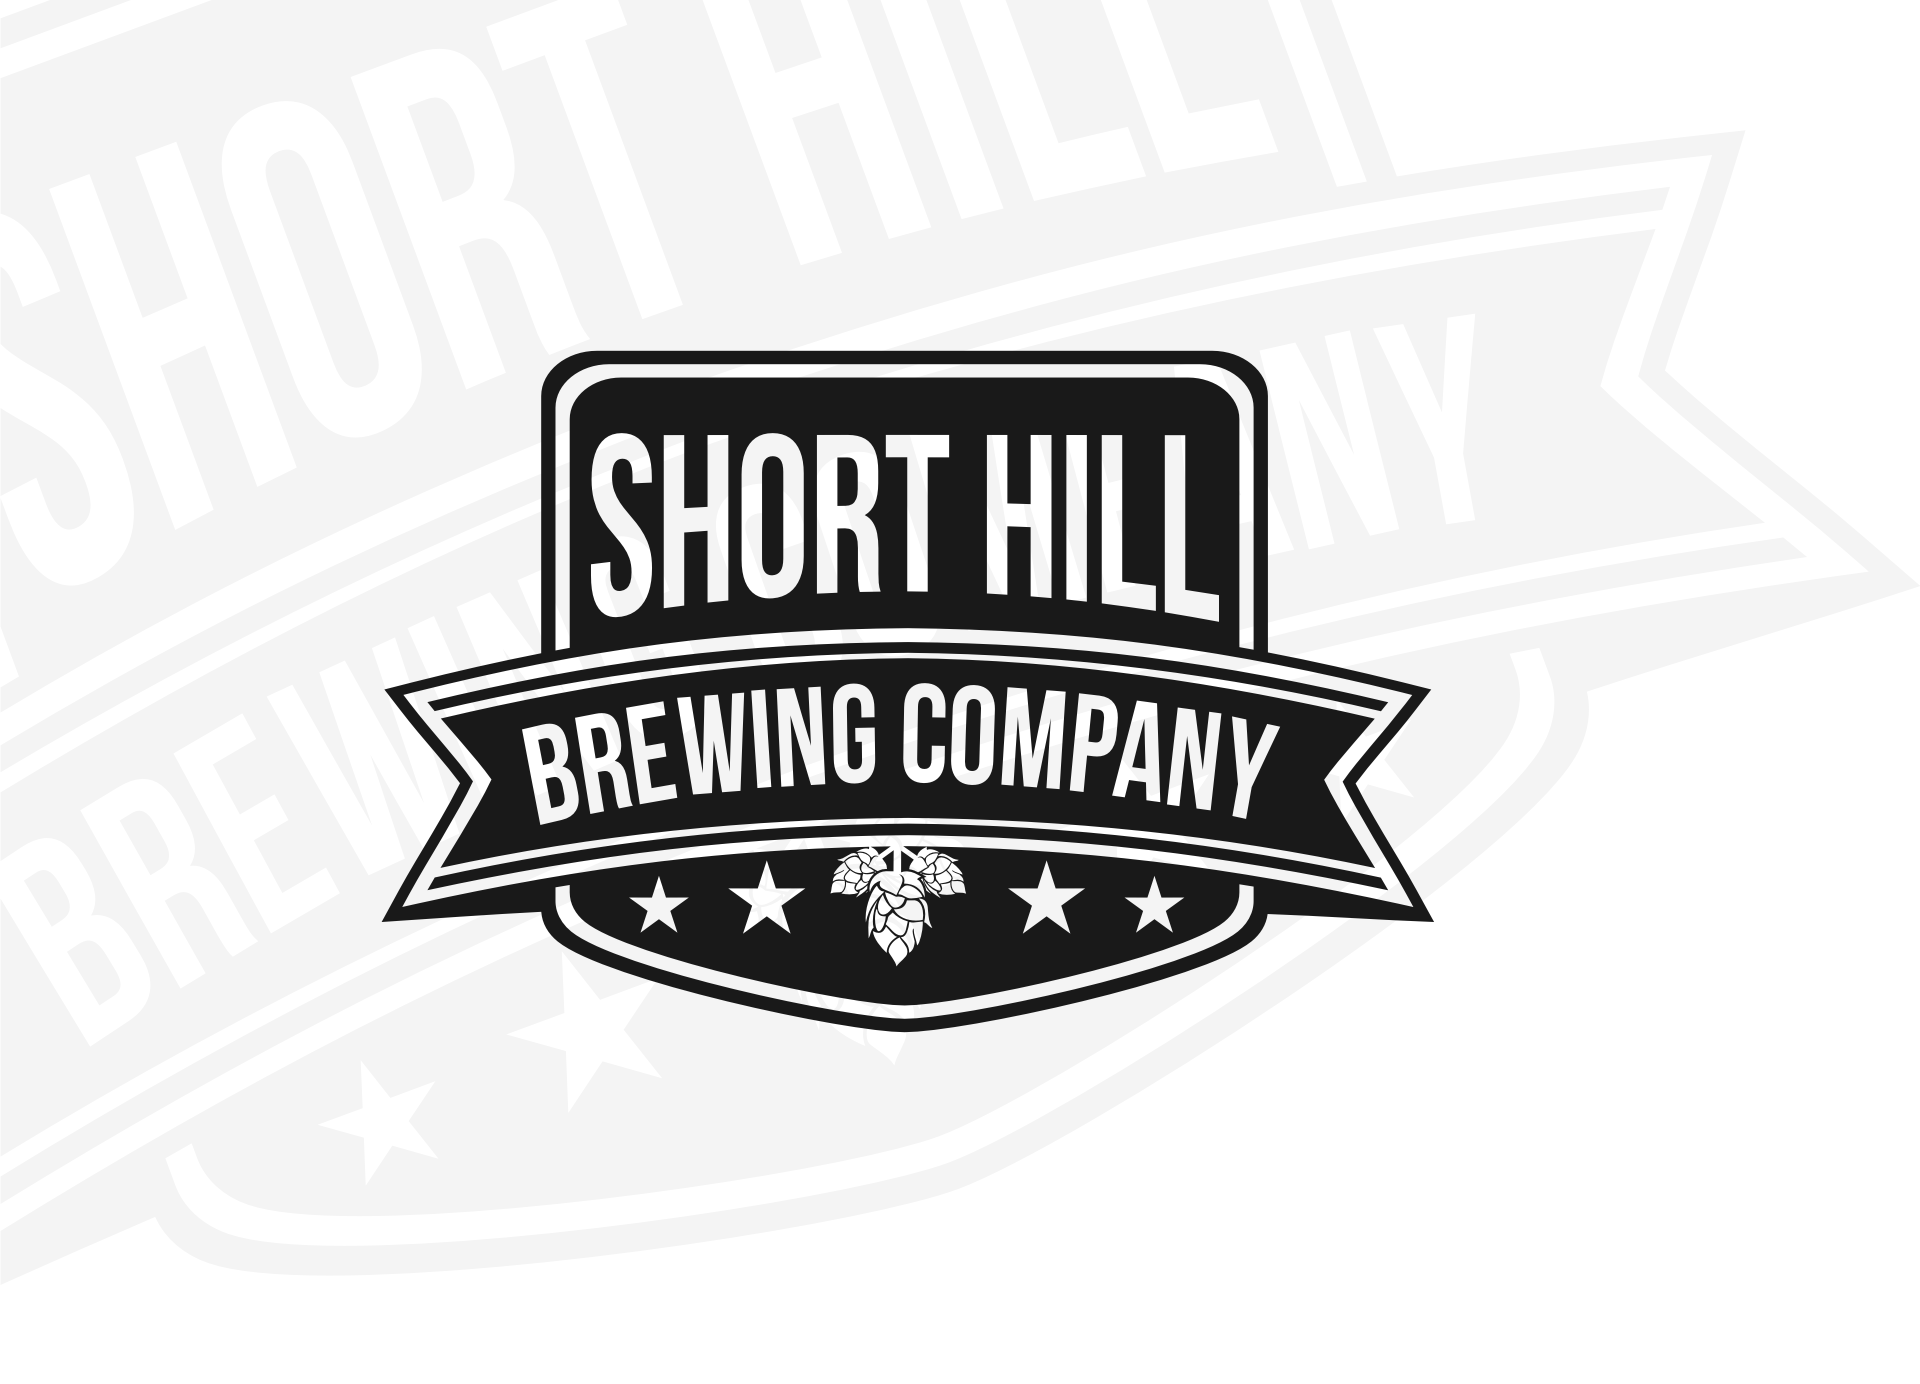 Logo Design by Tille Famz - Entry No. 12 in the Logo Design Contest Unique Logo Design Wanted for Short Hill Brewing Company.